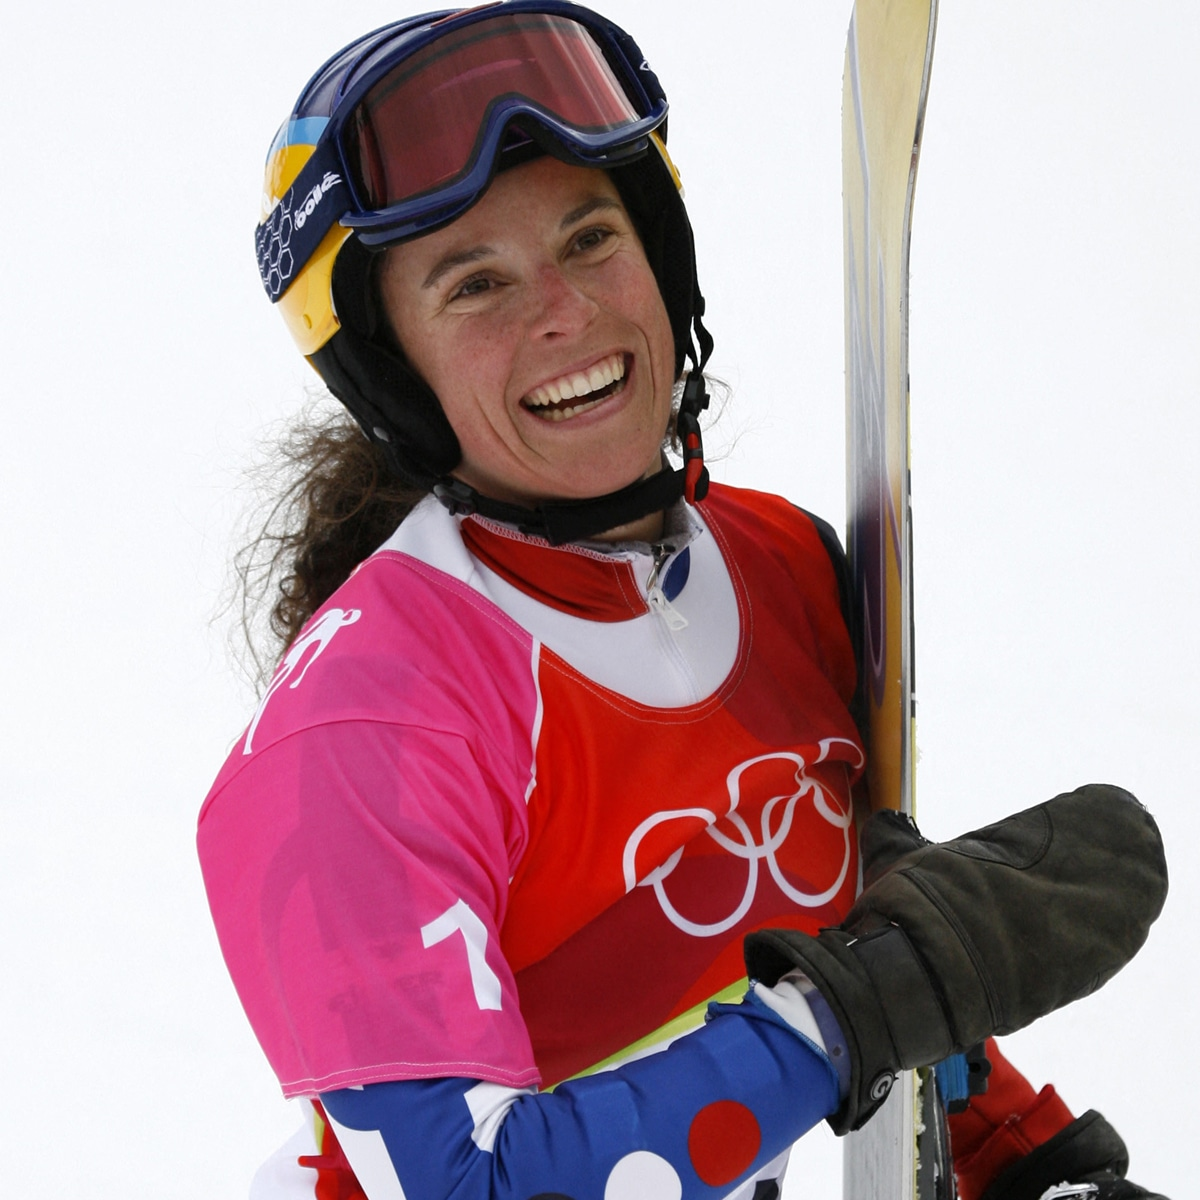 Olympic Snowboarder Julie Pomagalski Dies in Avalanche at Age 40 - E! Online